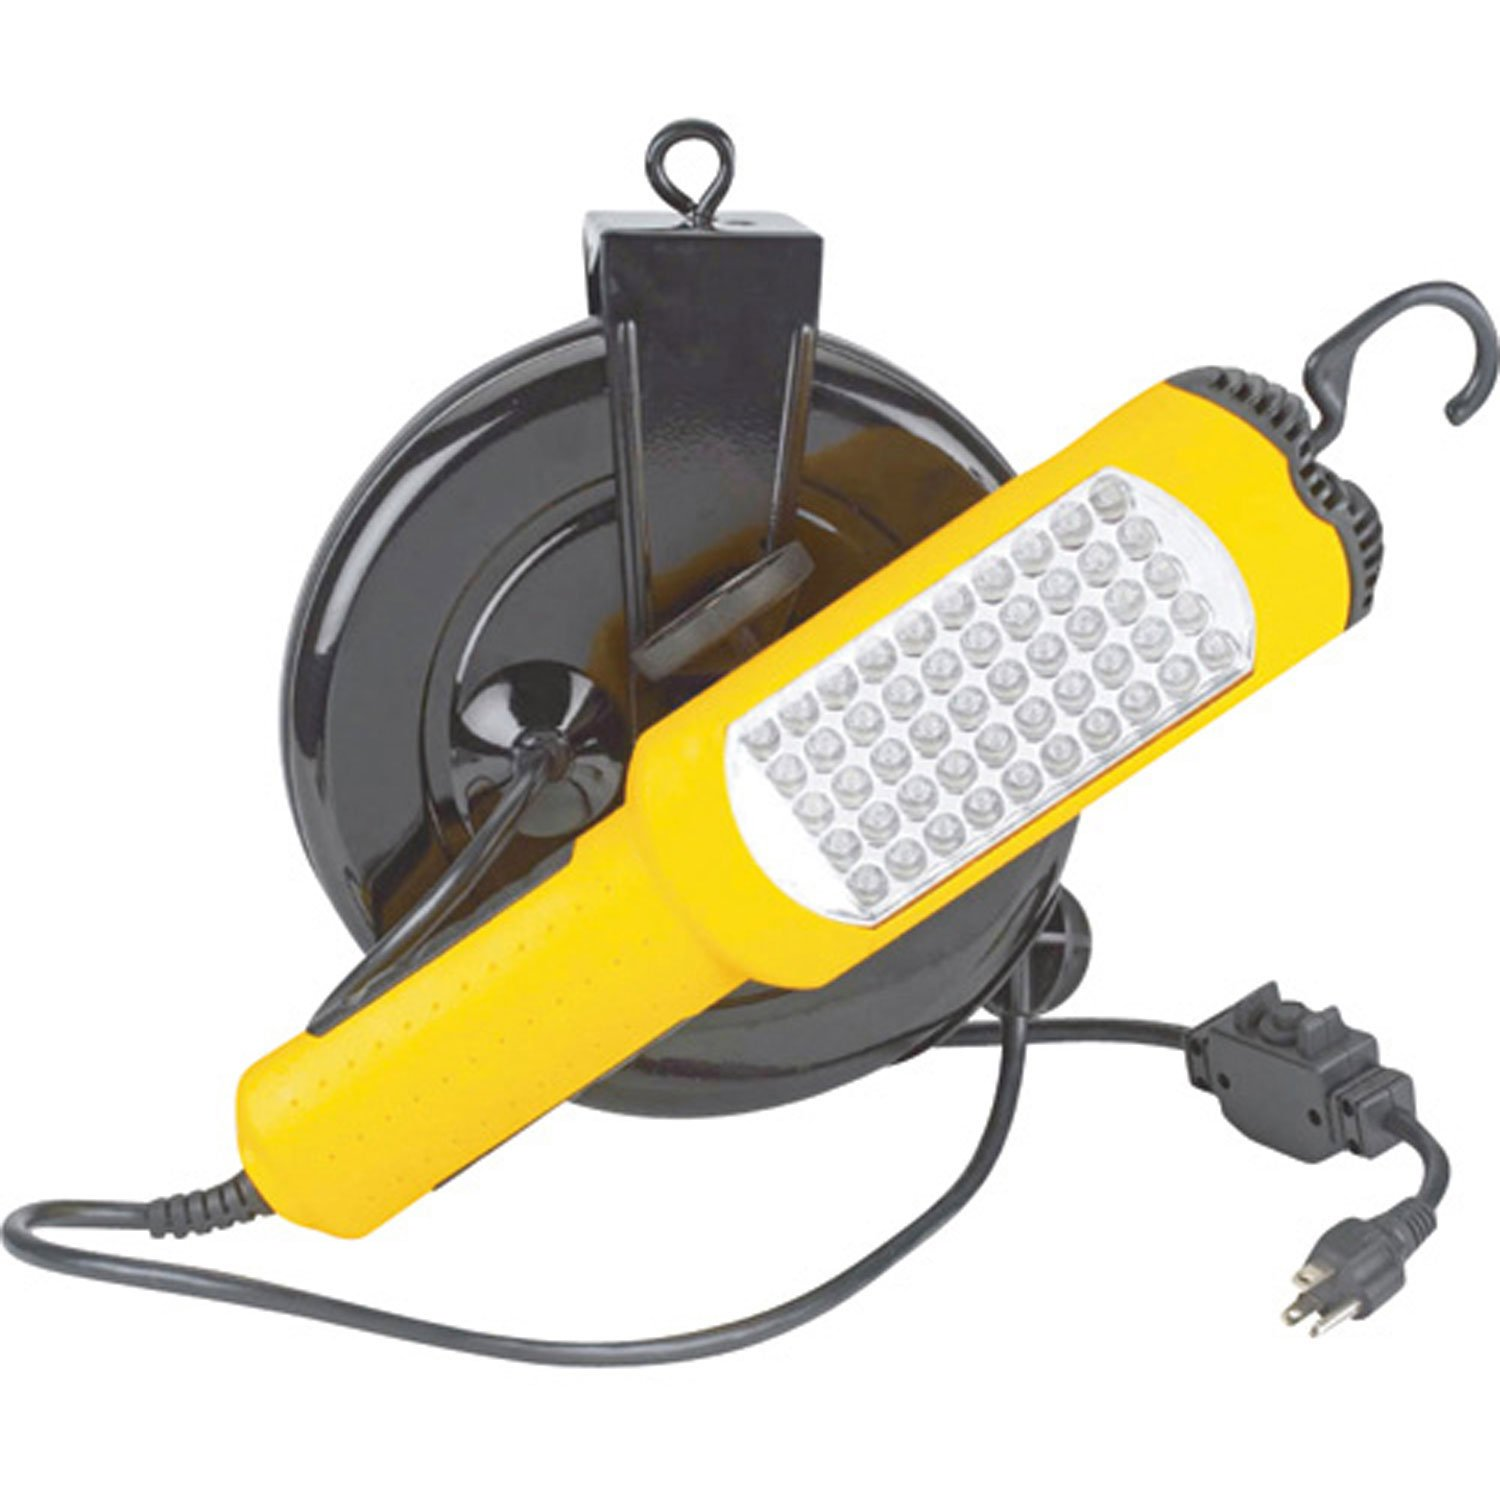 30' 16/3 SJTW Cable Reel, 50 Led Work Light W/ 10A Cb Outlet In Handle, LE2630L50